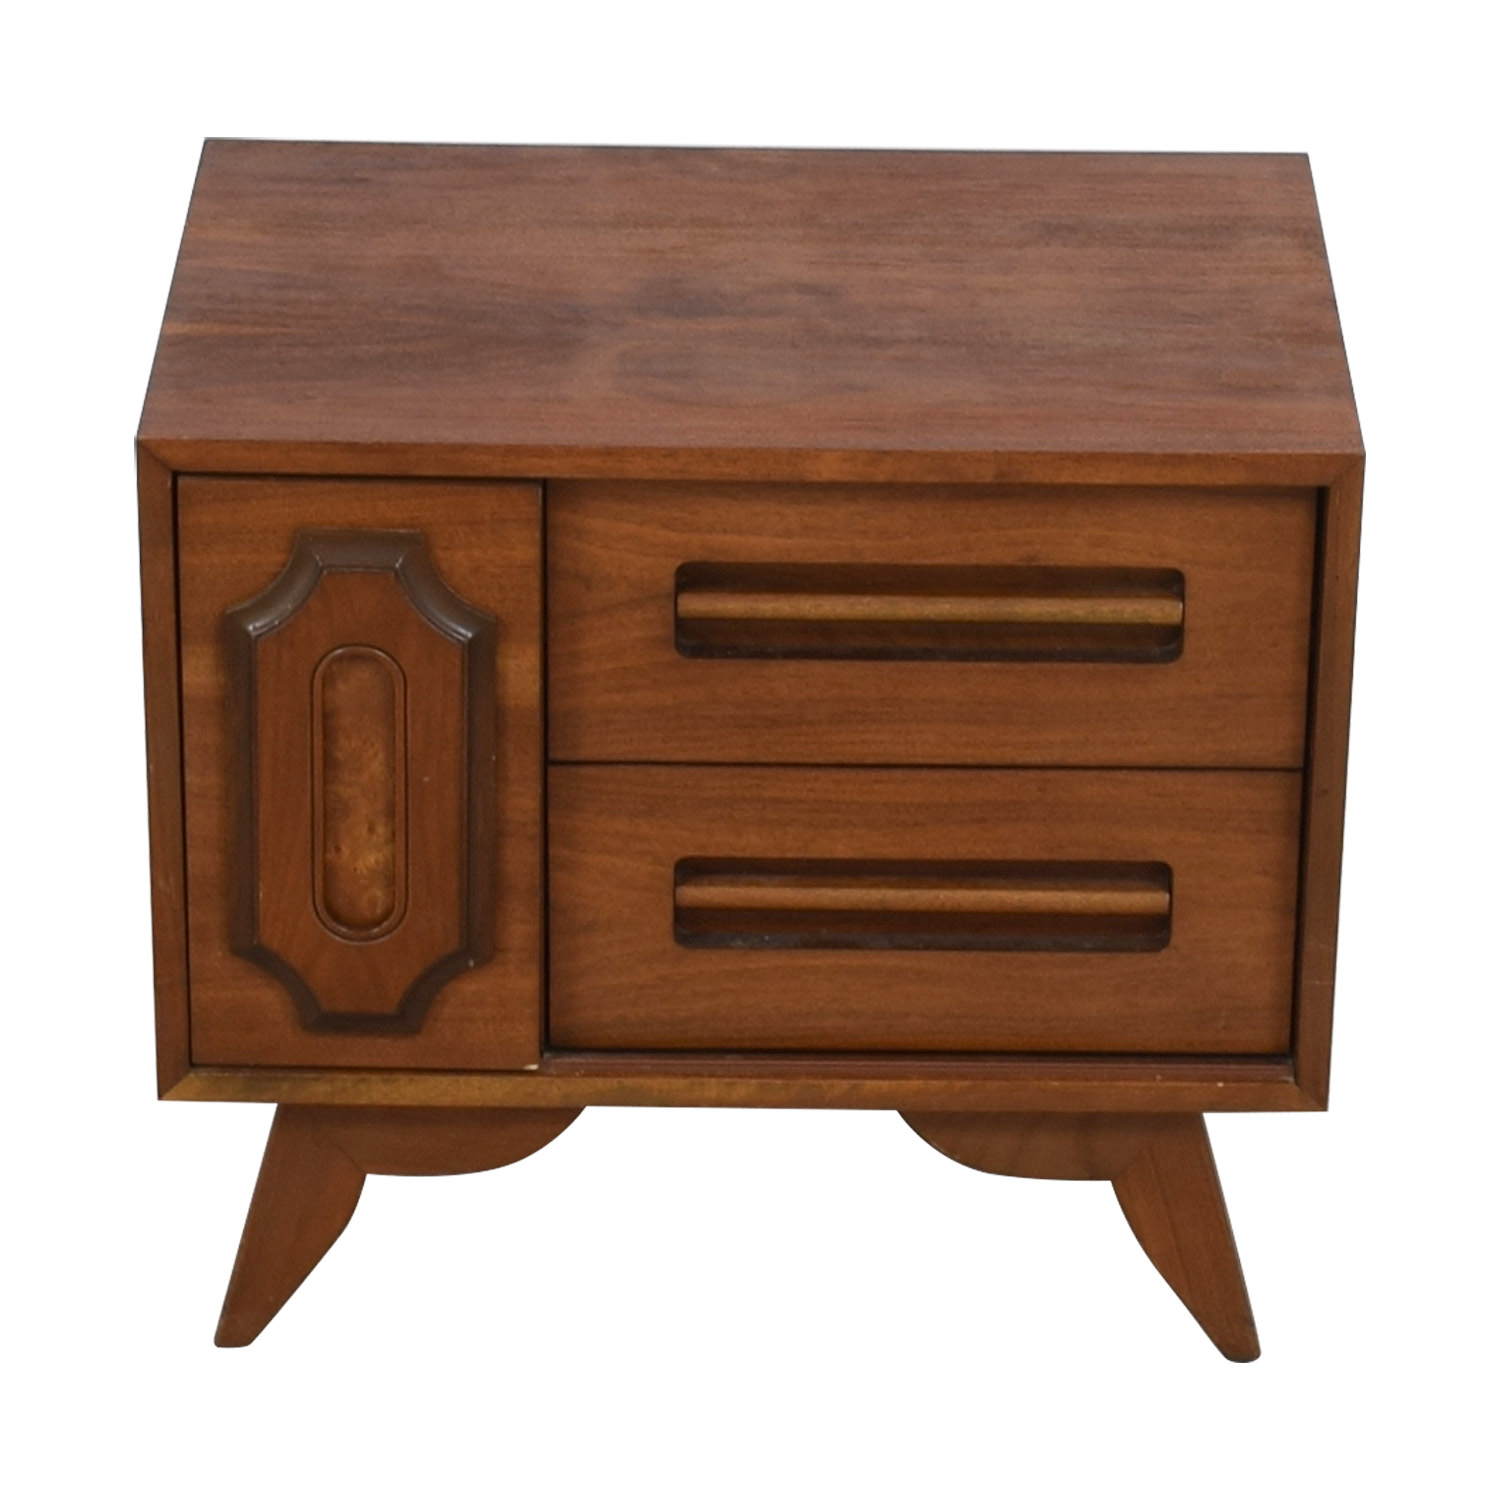 Two-Drawer Side Table used